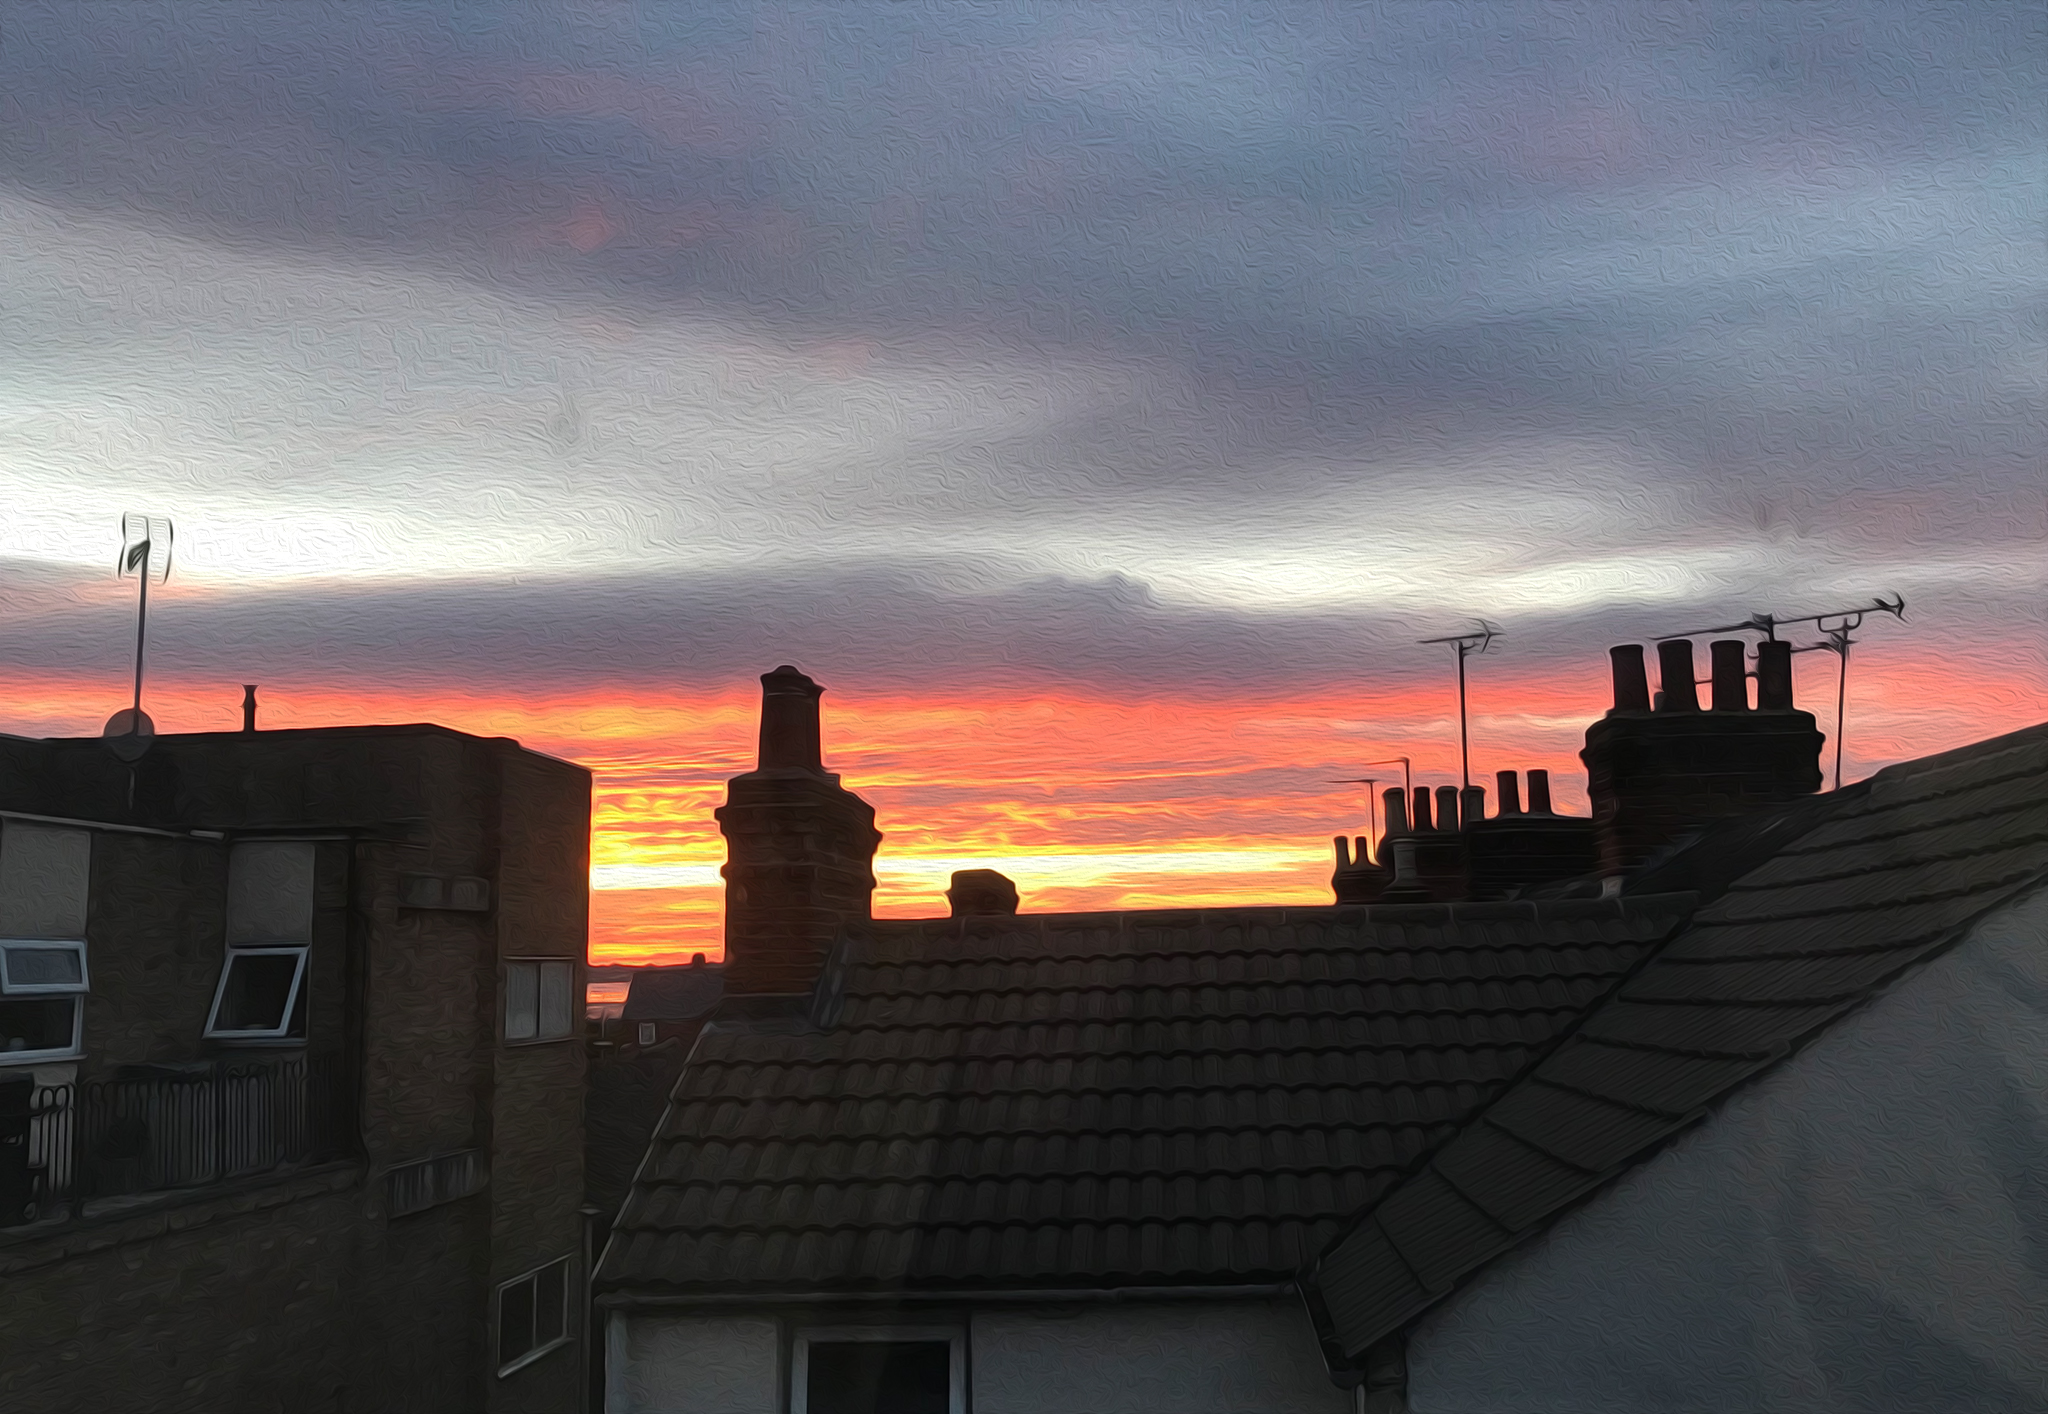 Sunset over the rooftops in Harwich